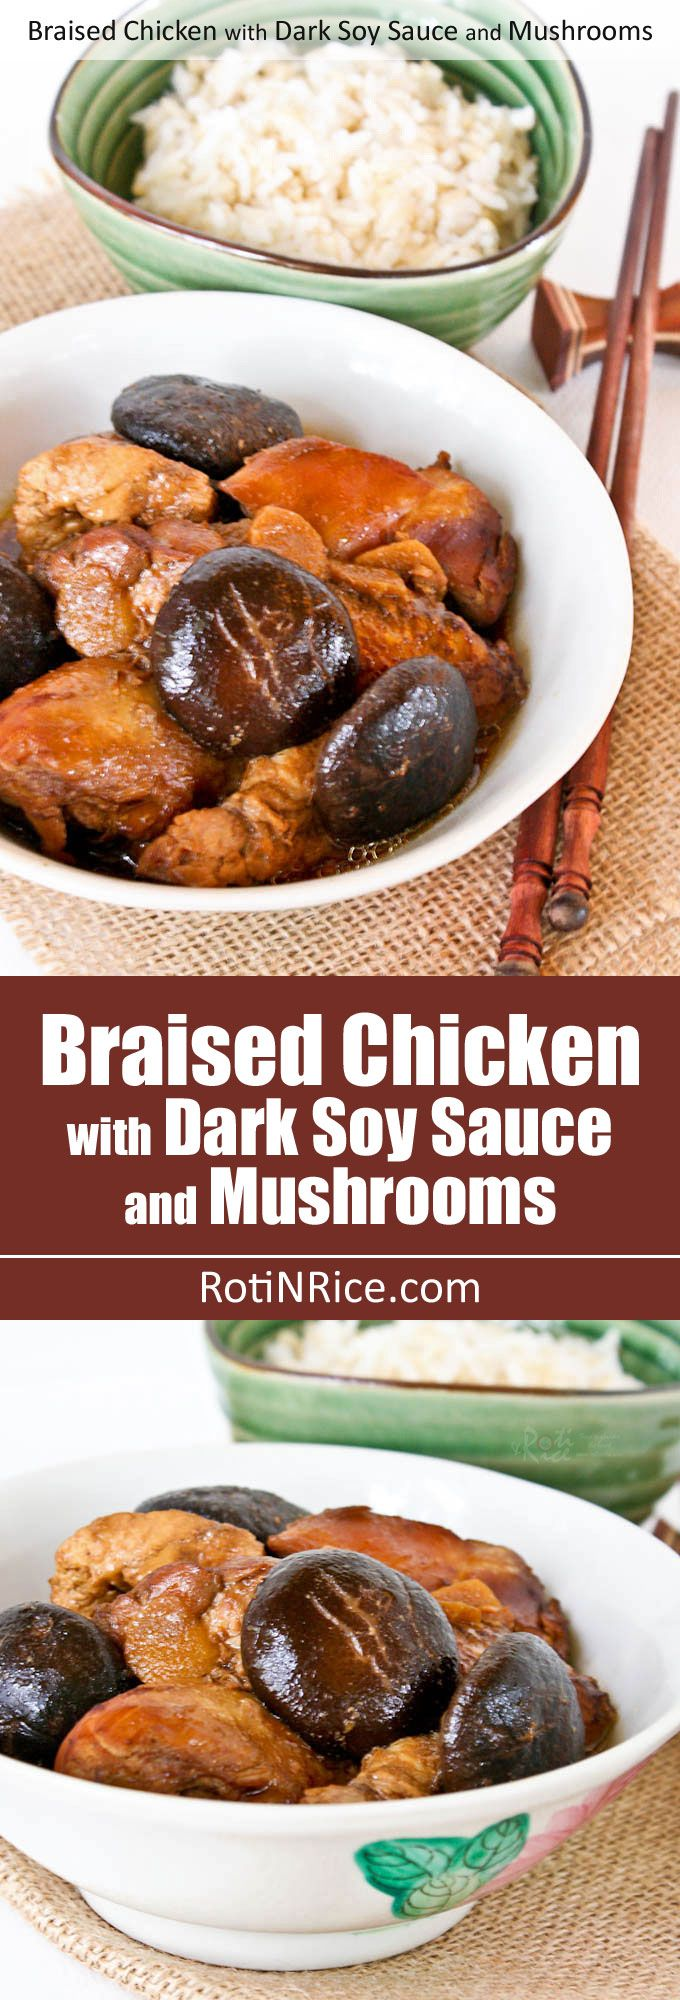 This classic Braised Chicken with Dark Soy Sauce and Mushrooms is Chinese home cooking at its best. So comforting and delicious with a bowl of steamed rice.   RotiNRice.com